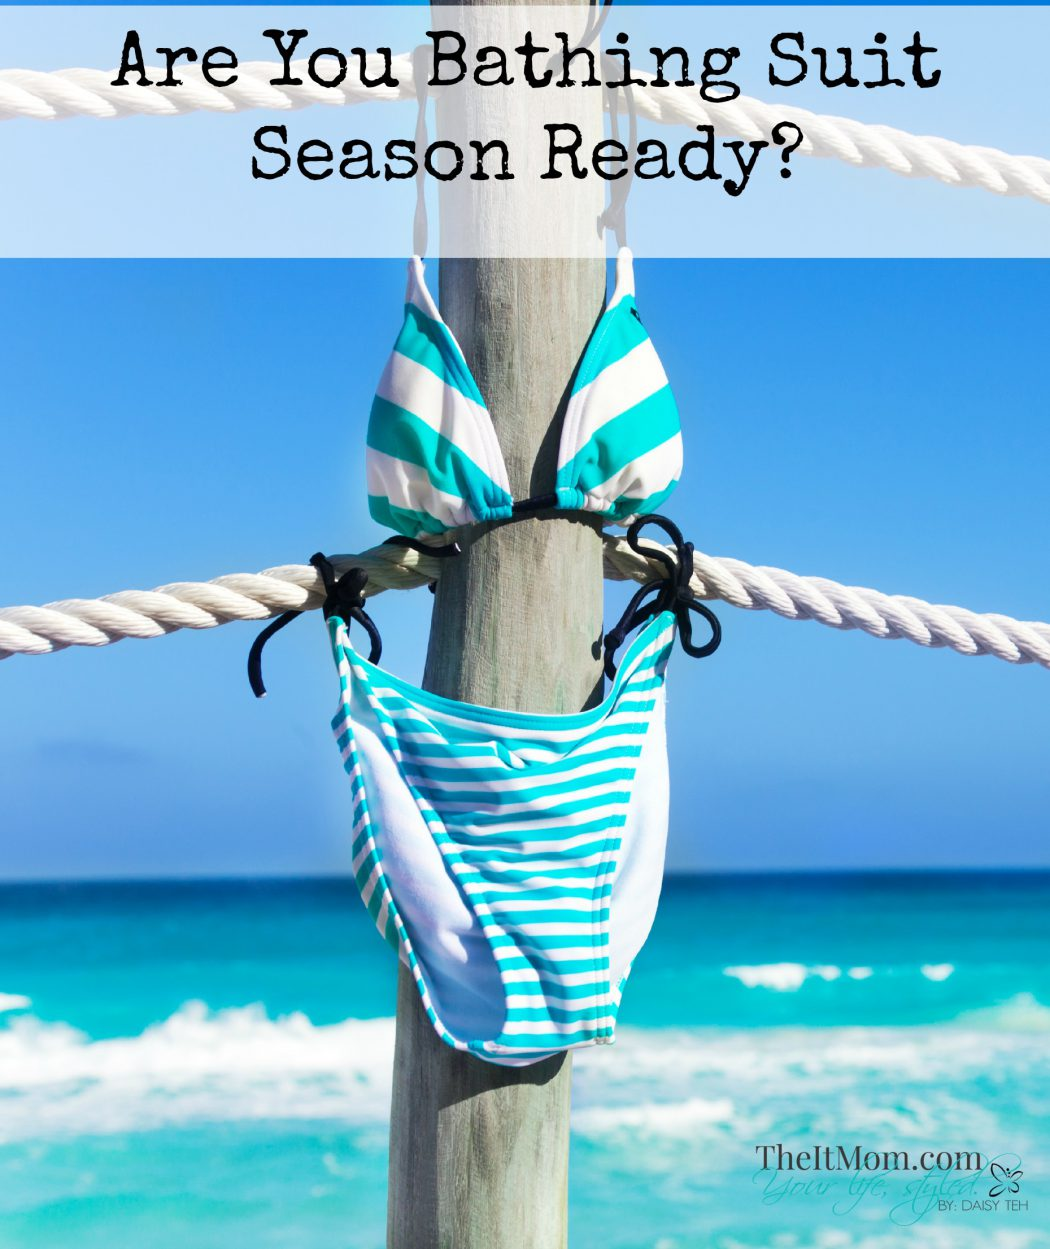 Are You Bathing Suit Season Ready